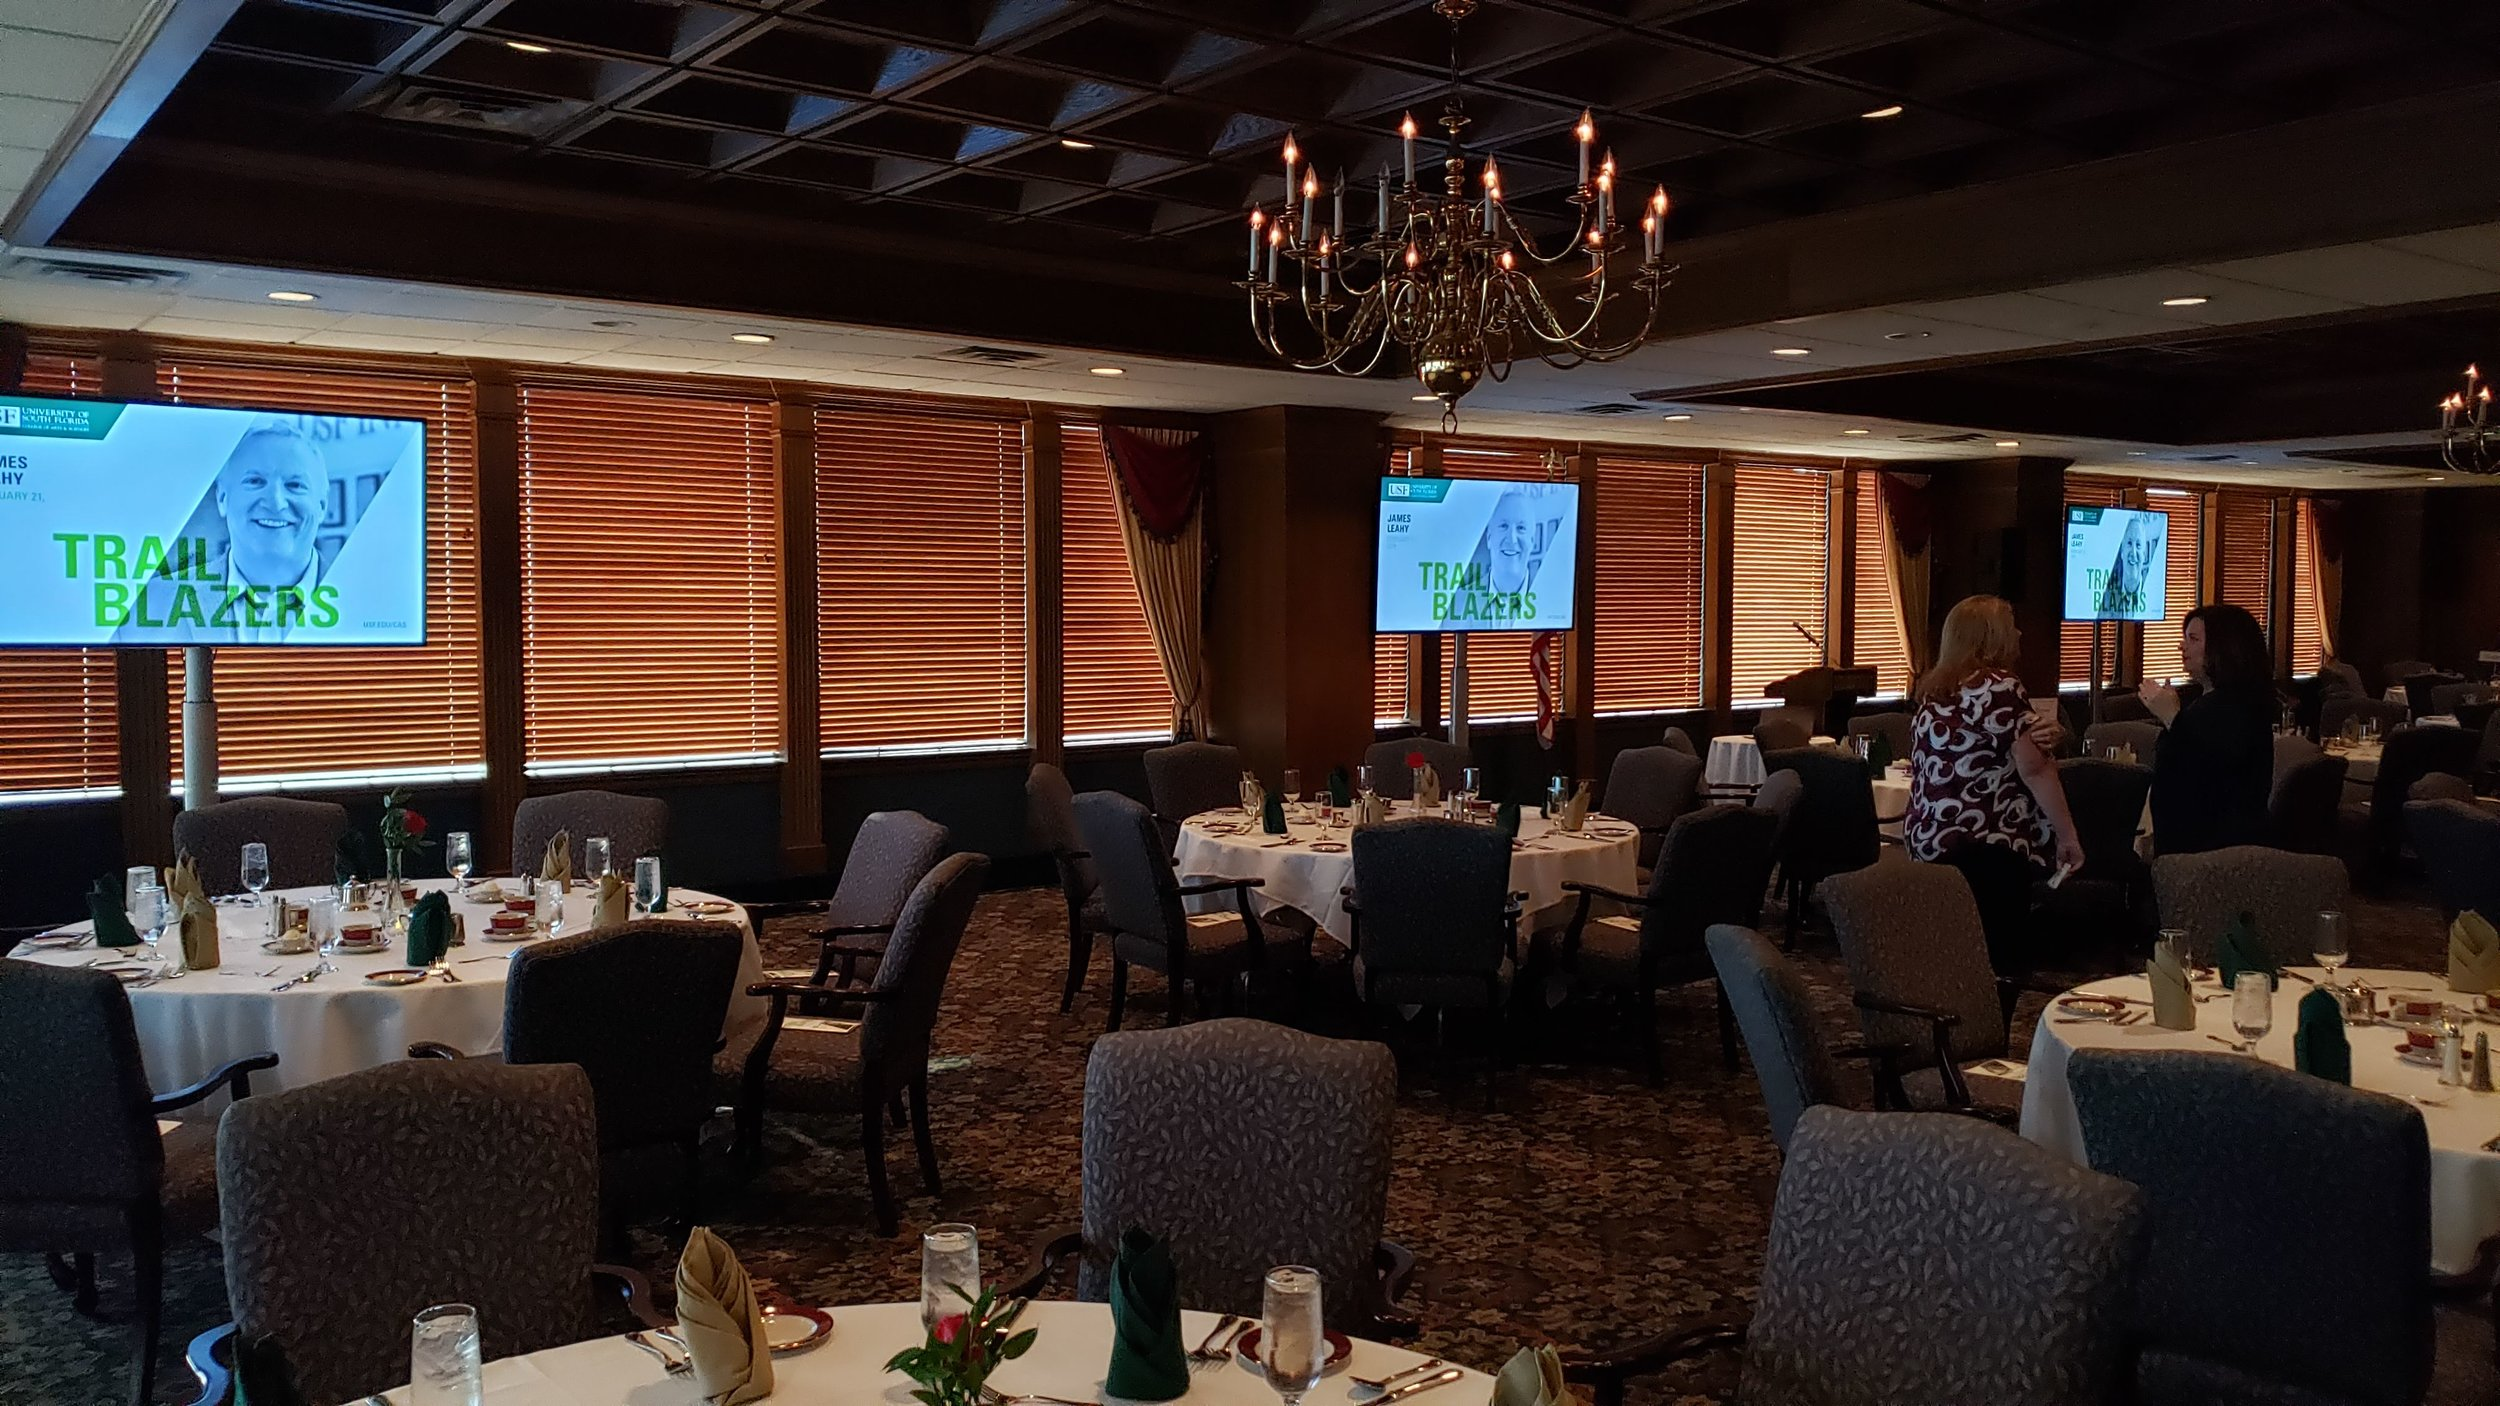 75-Inch Flat Screen TV's on Stands - 2019 USF Donor Dinner Program.jpg